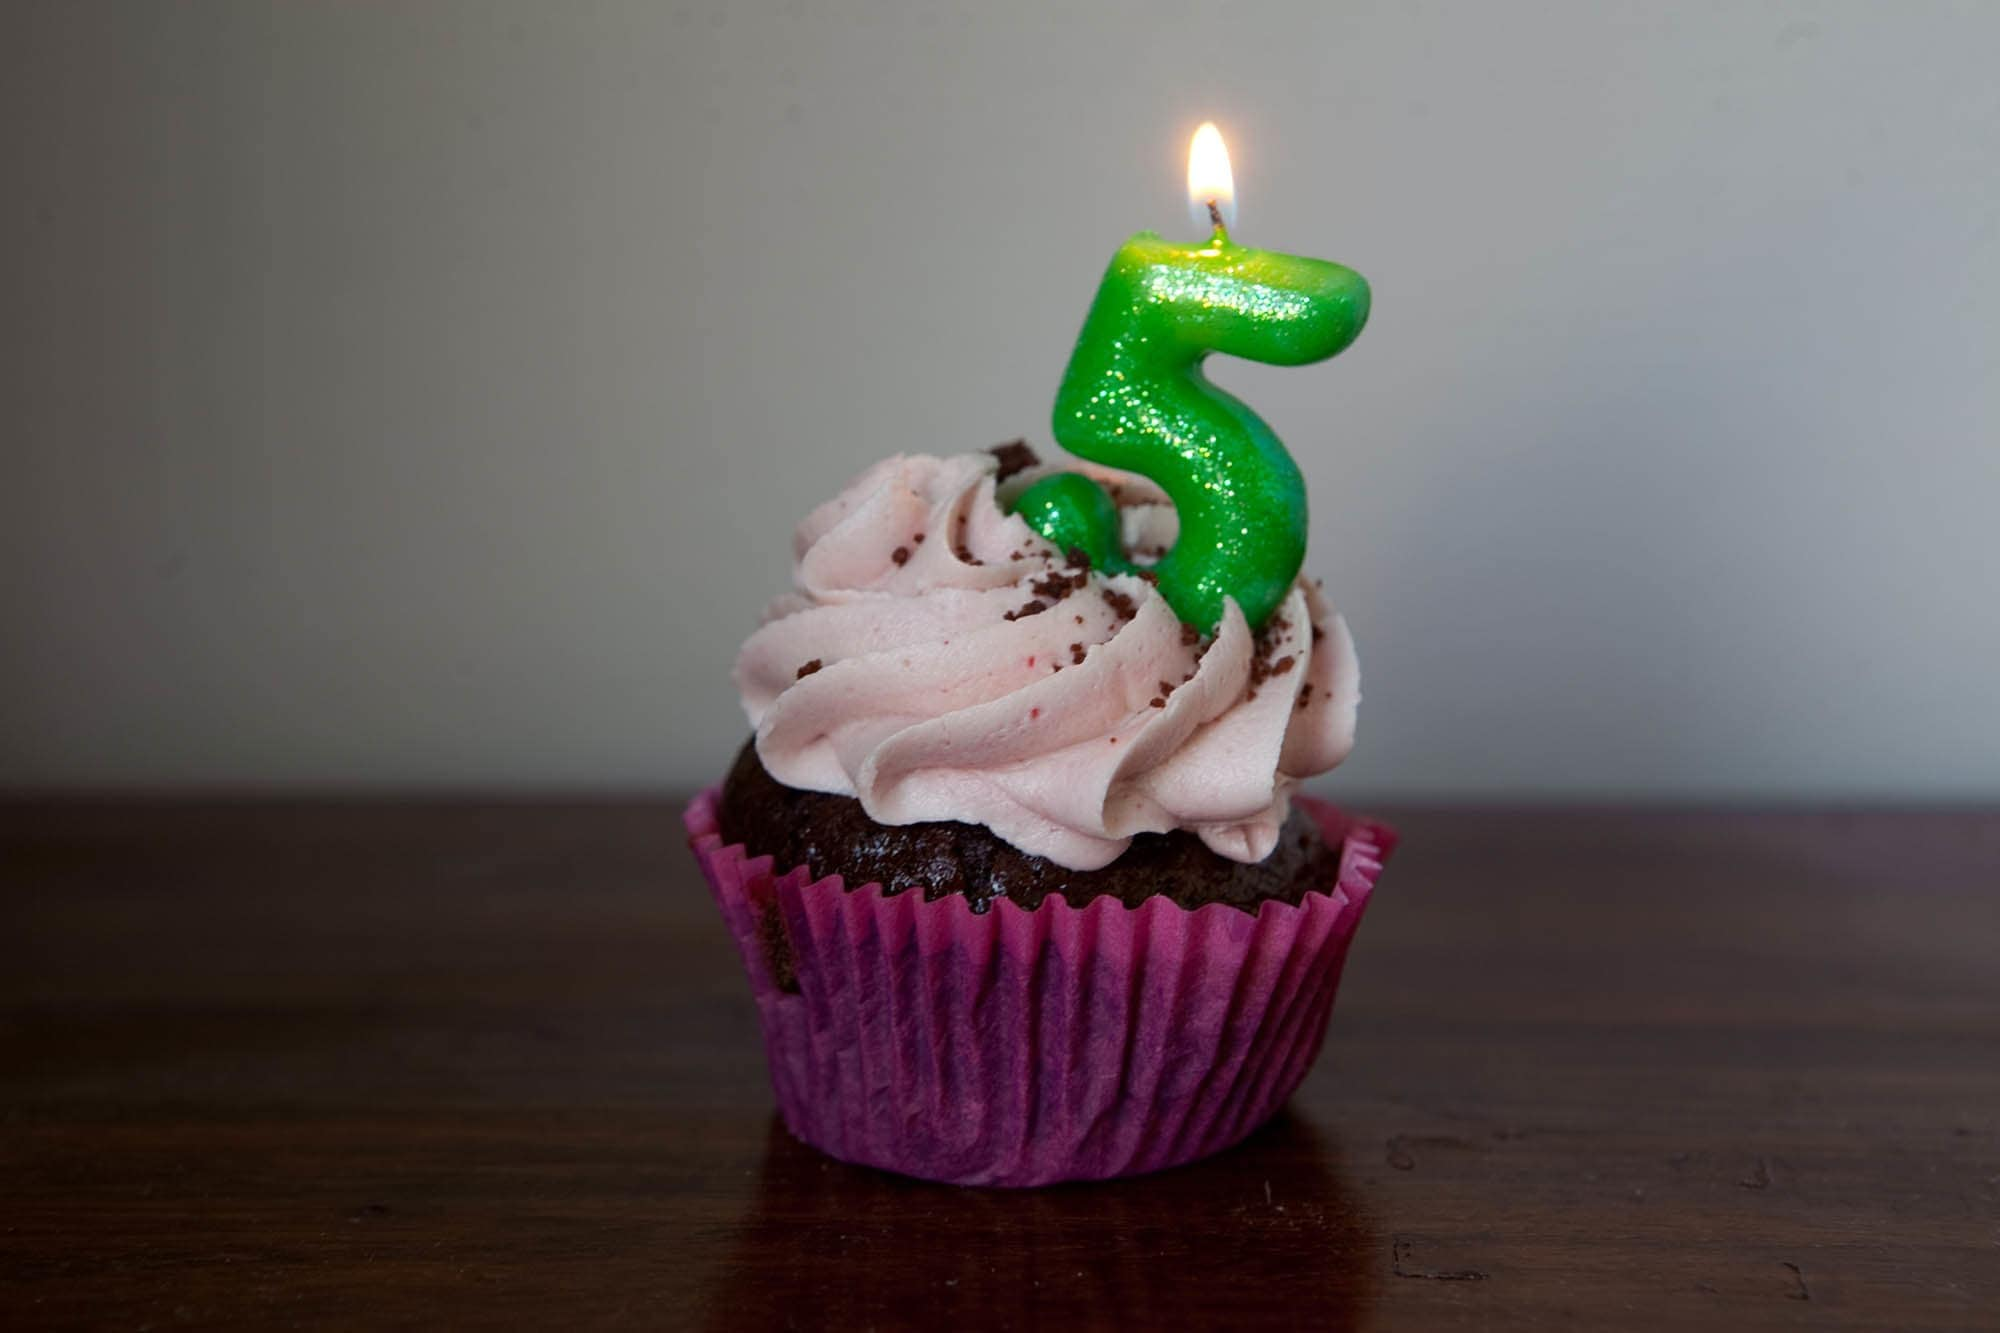 Happy Birthday Blog! Five years of blogging.